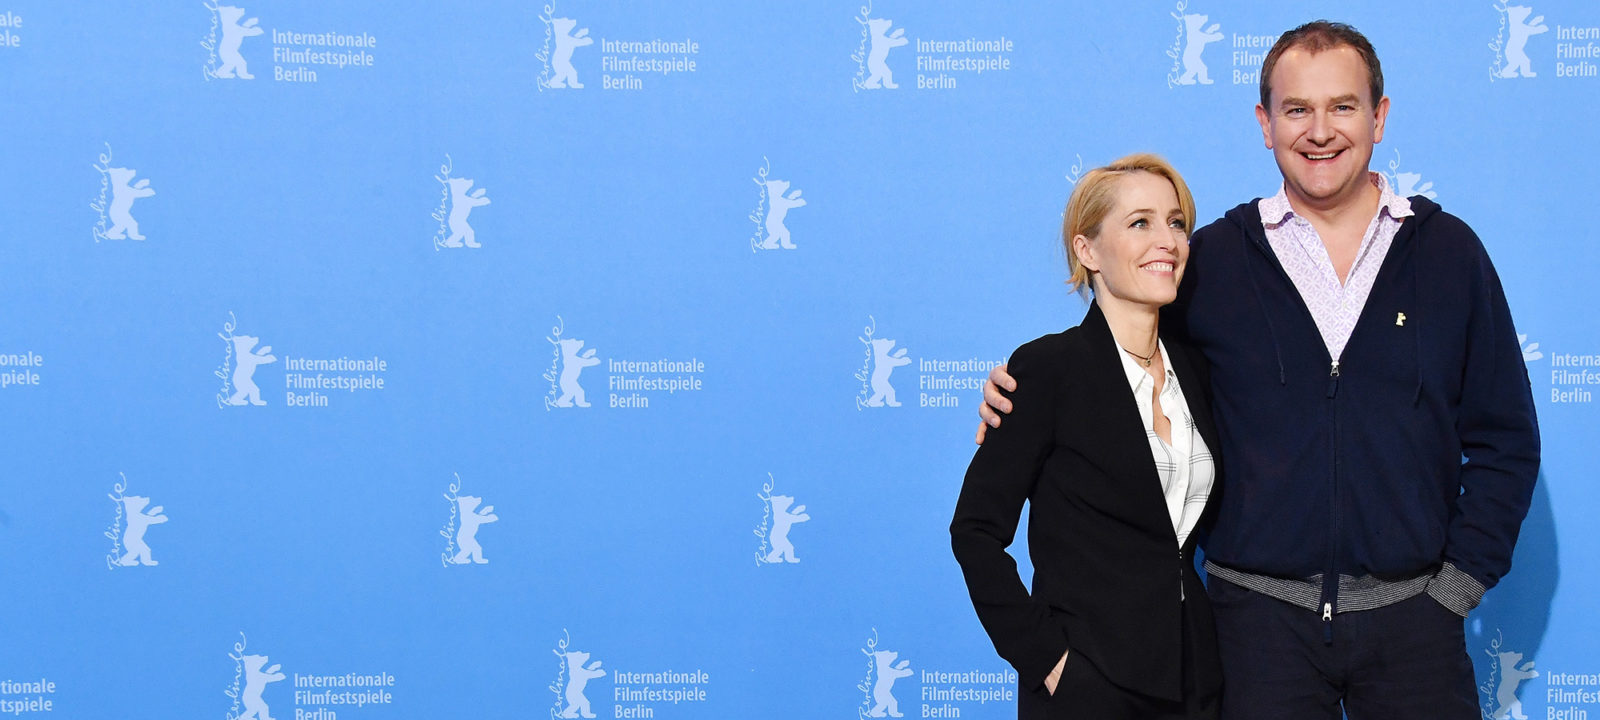 'Viceroy's House' Photo Call – 67th Berlinale International Film Festival